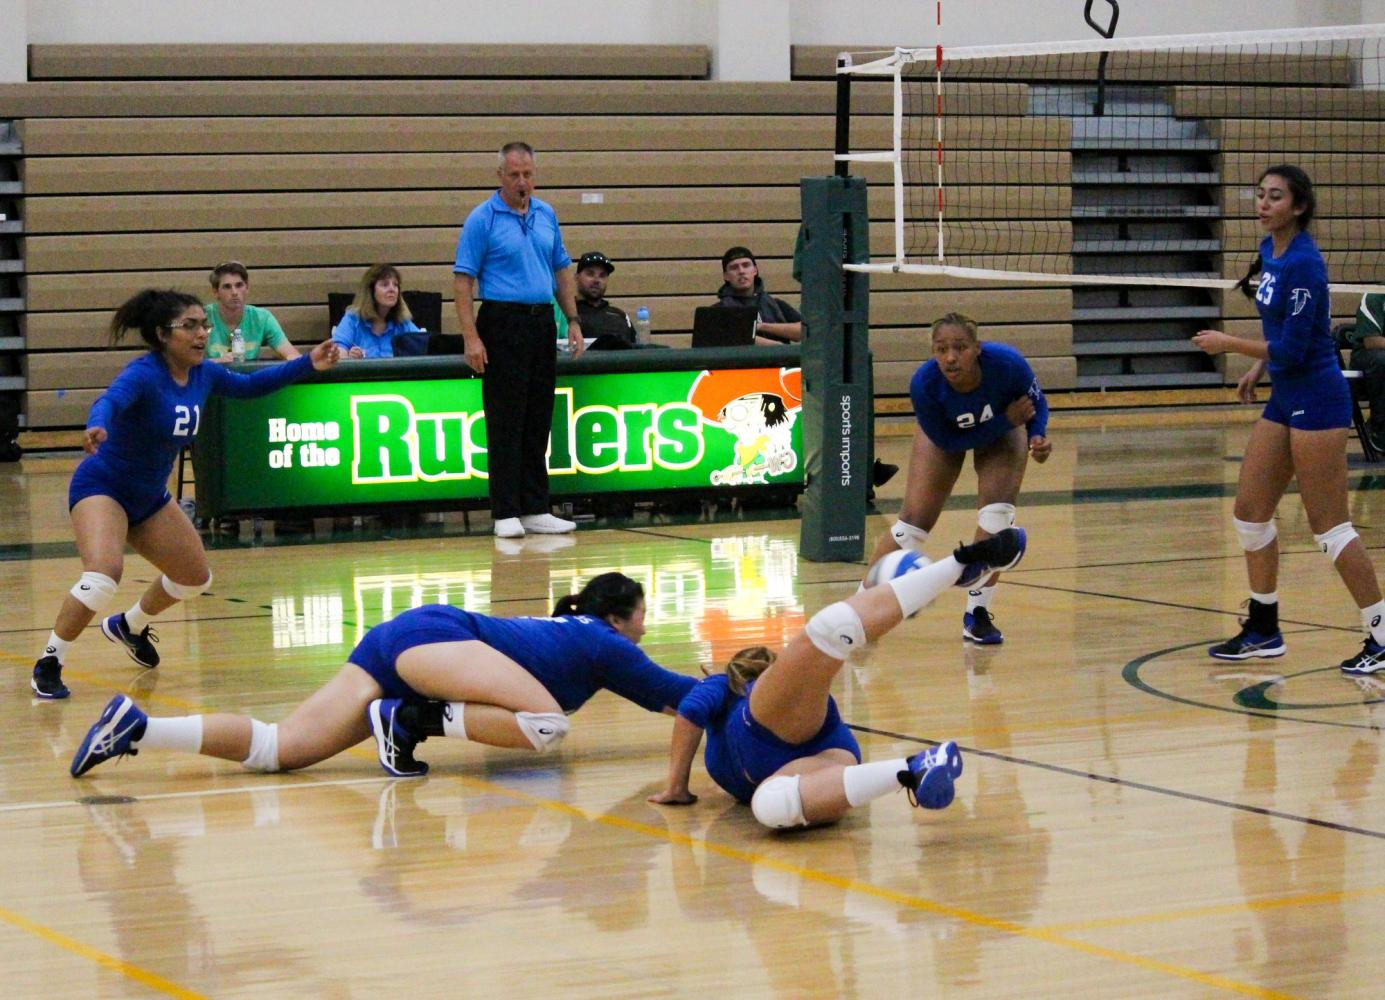 Cerritos College freshman #17 Jody Suski and freshman #4 Nataly Reynoso both dive after a ball during Friday's game against Golden West. The Falcons were swept by the Rustlers in 3 games. Photo credit: Lindsay Helberg